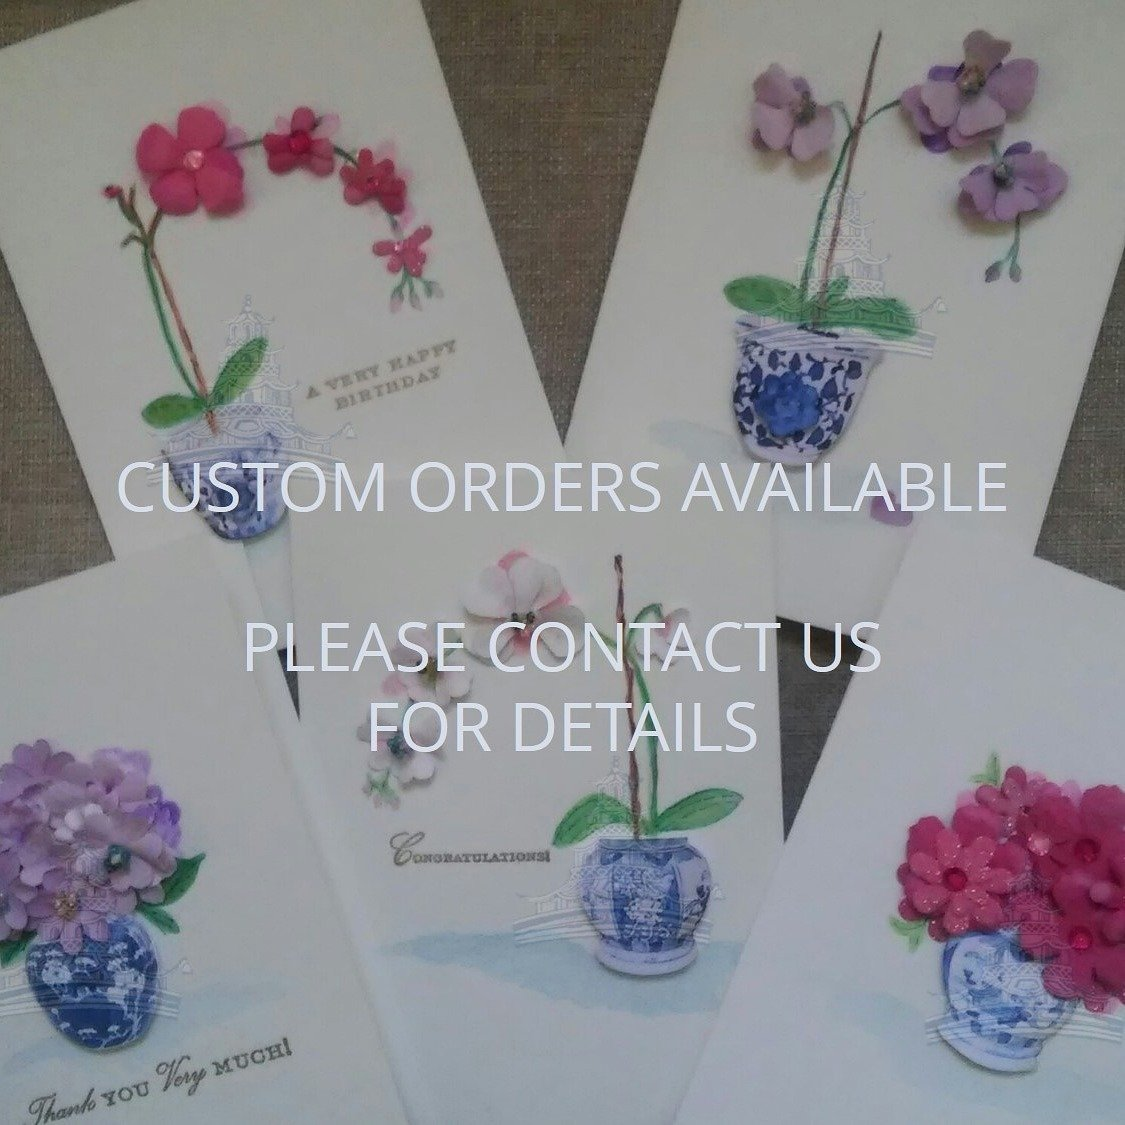 Letterworth Floral Chinoiserie Handmade Greeting Cards Boxed Set (Set of 5)